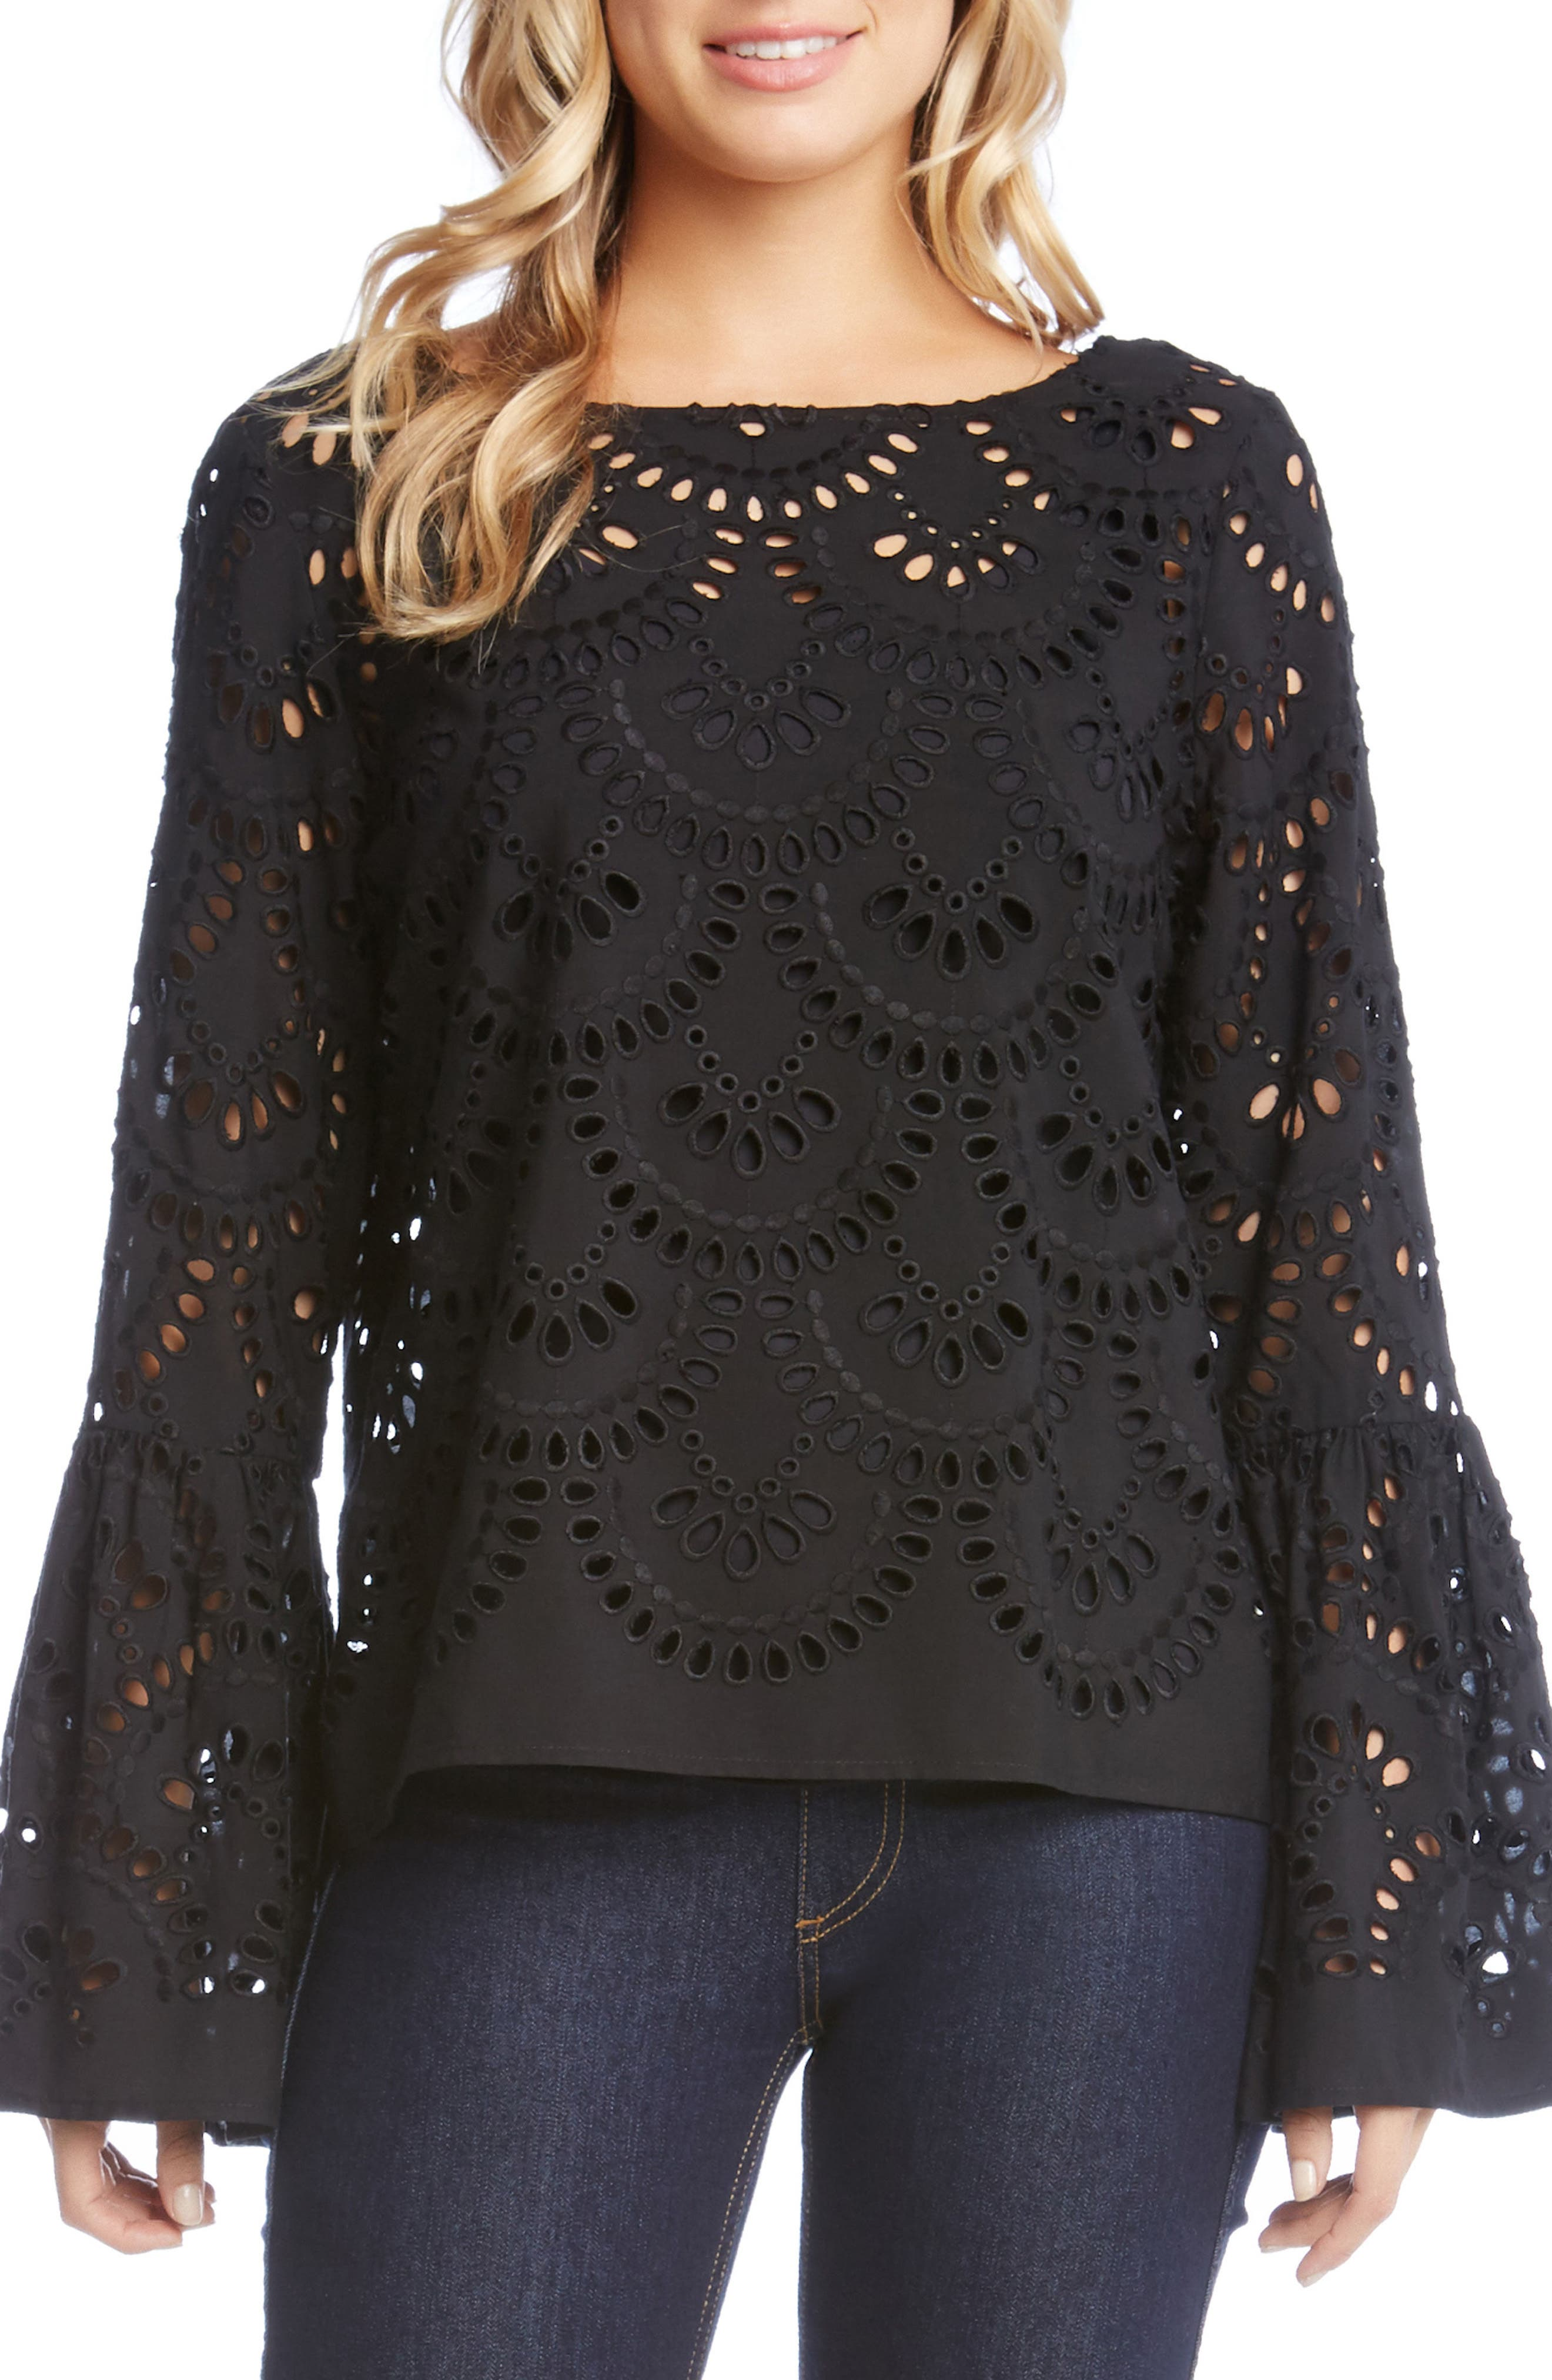 Alternate Image 1 Selected - Karen Kane Eyelet Bell Sleeve Top